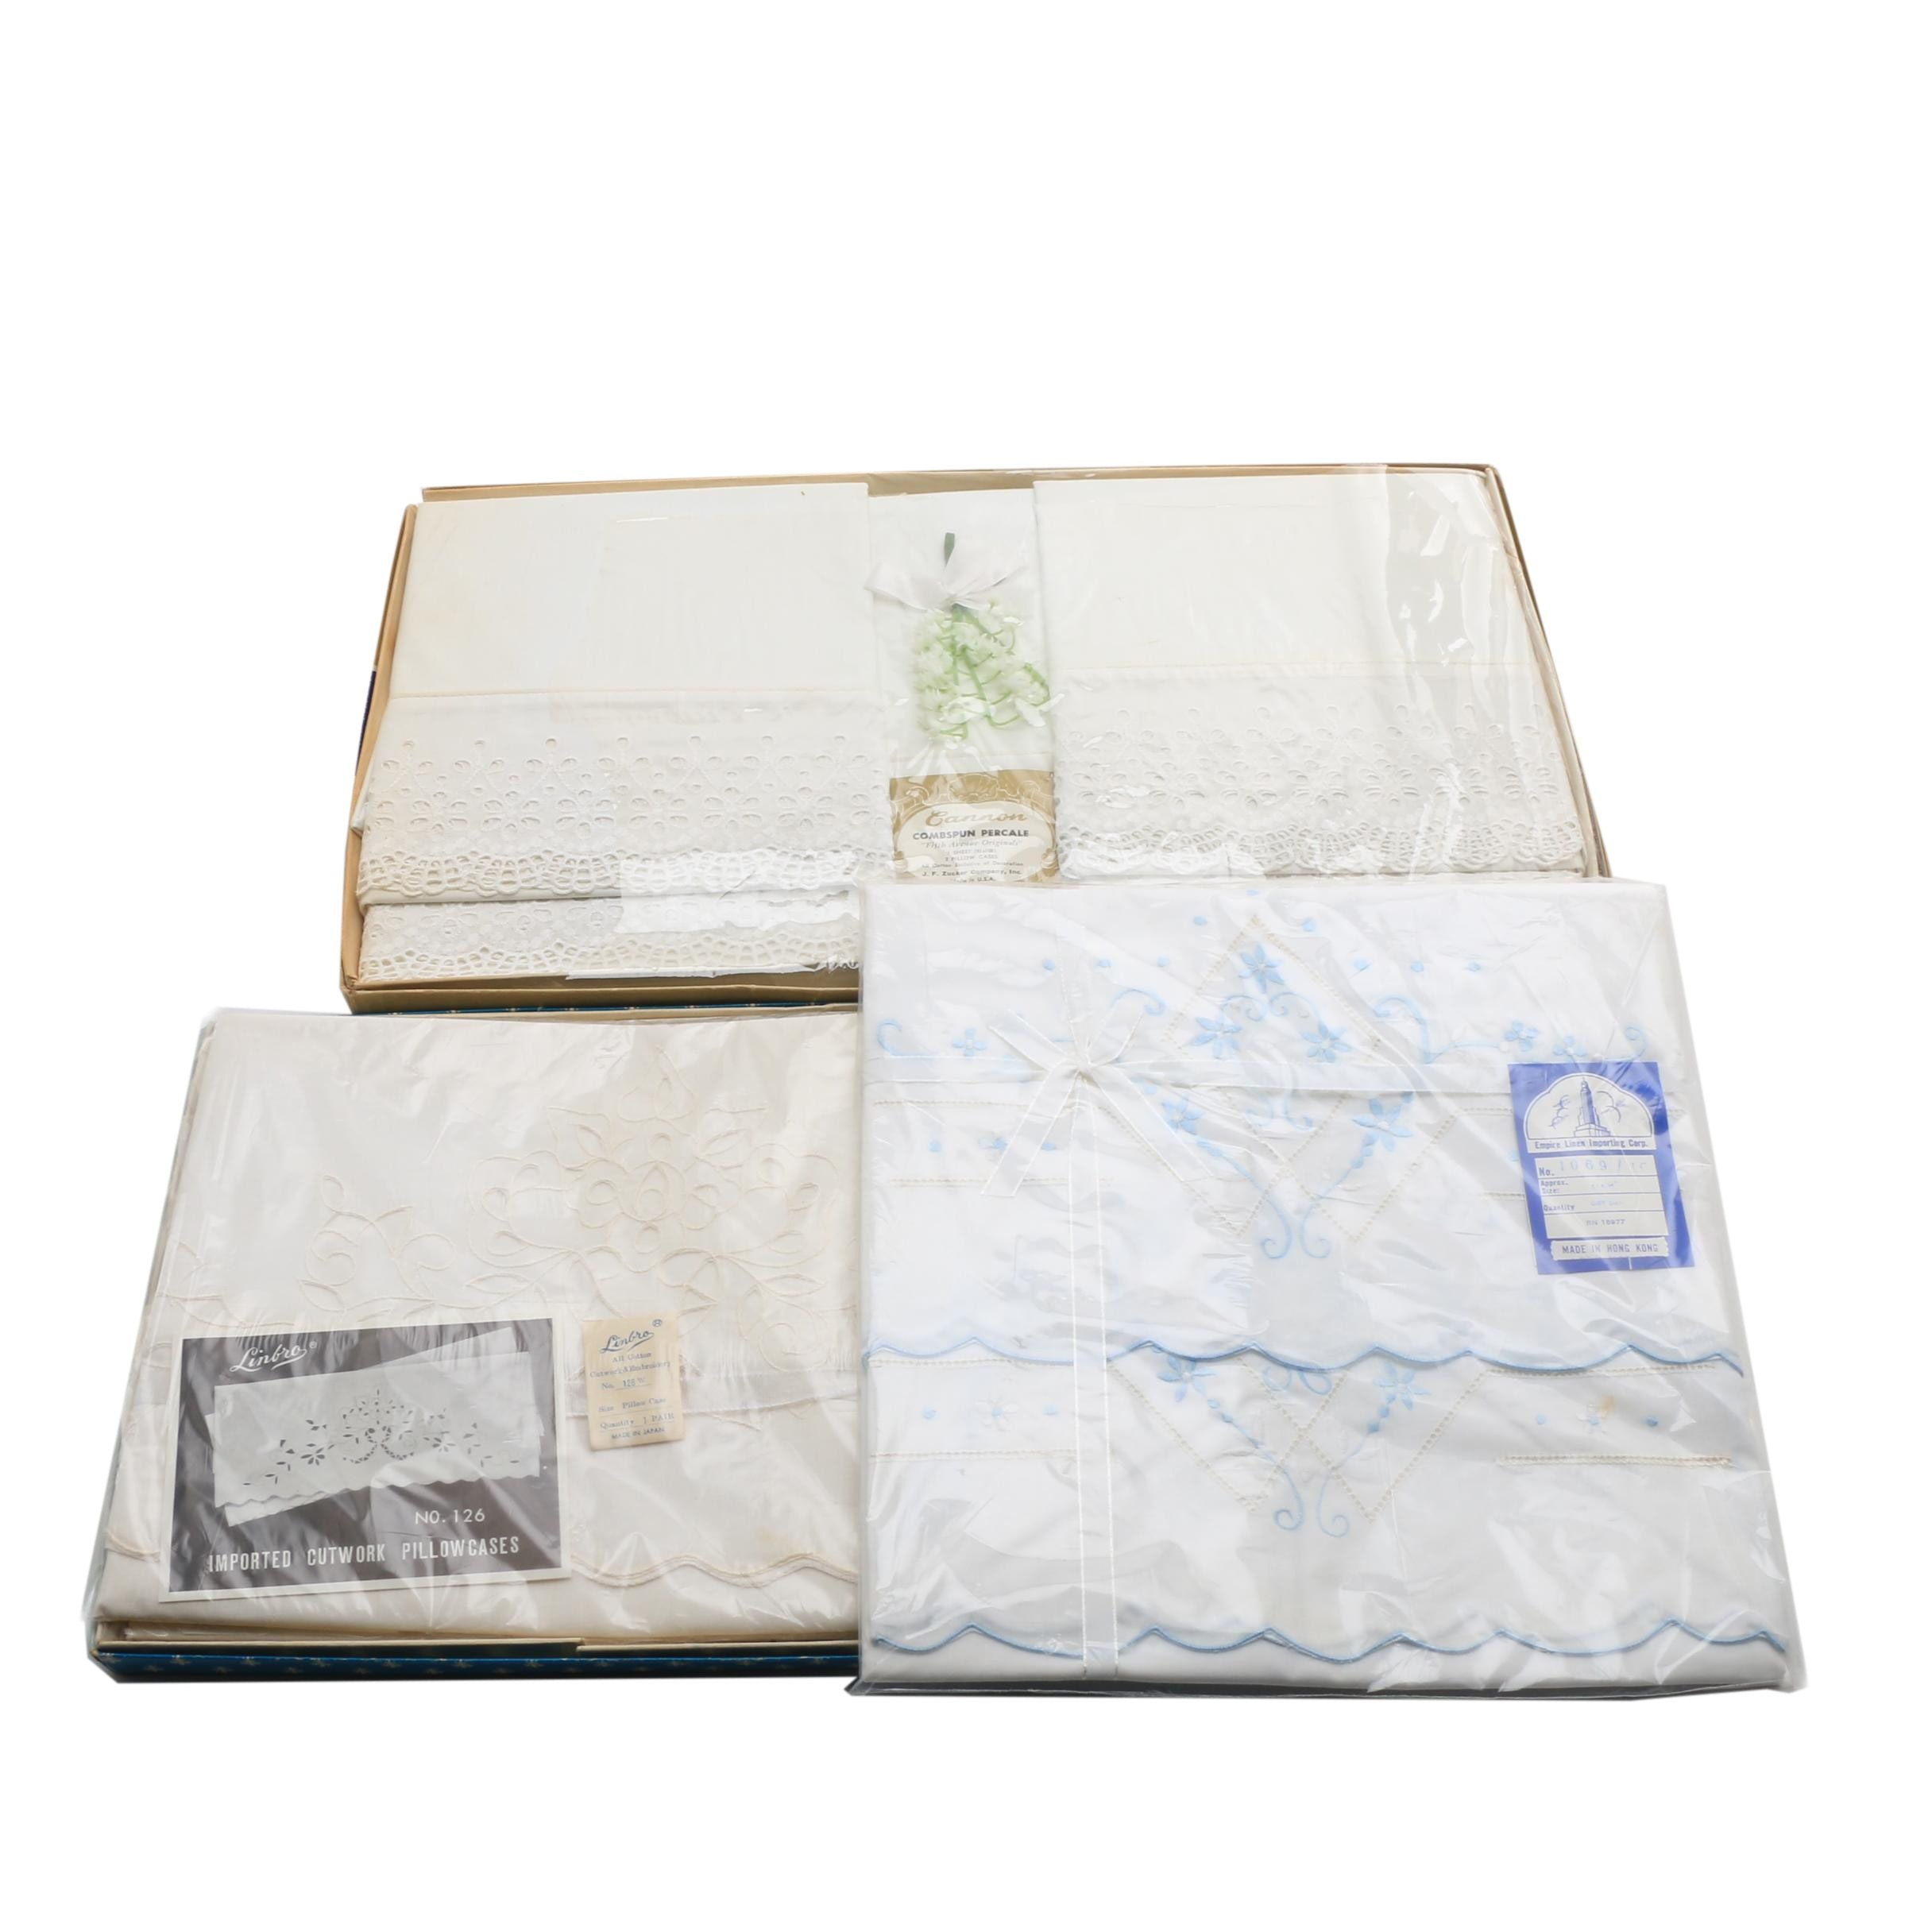 Unopened Linen Pillow Cases and a Cannon Sheet and Pillow Case Set